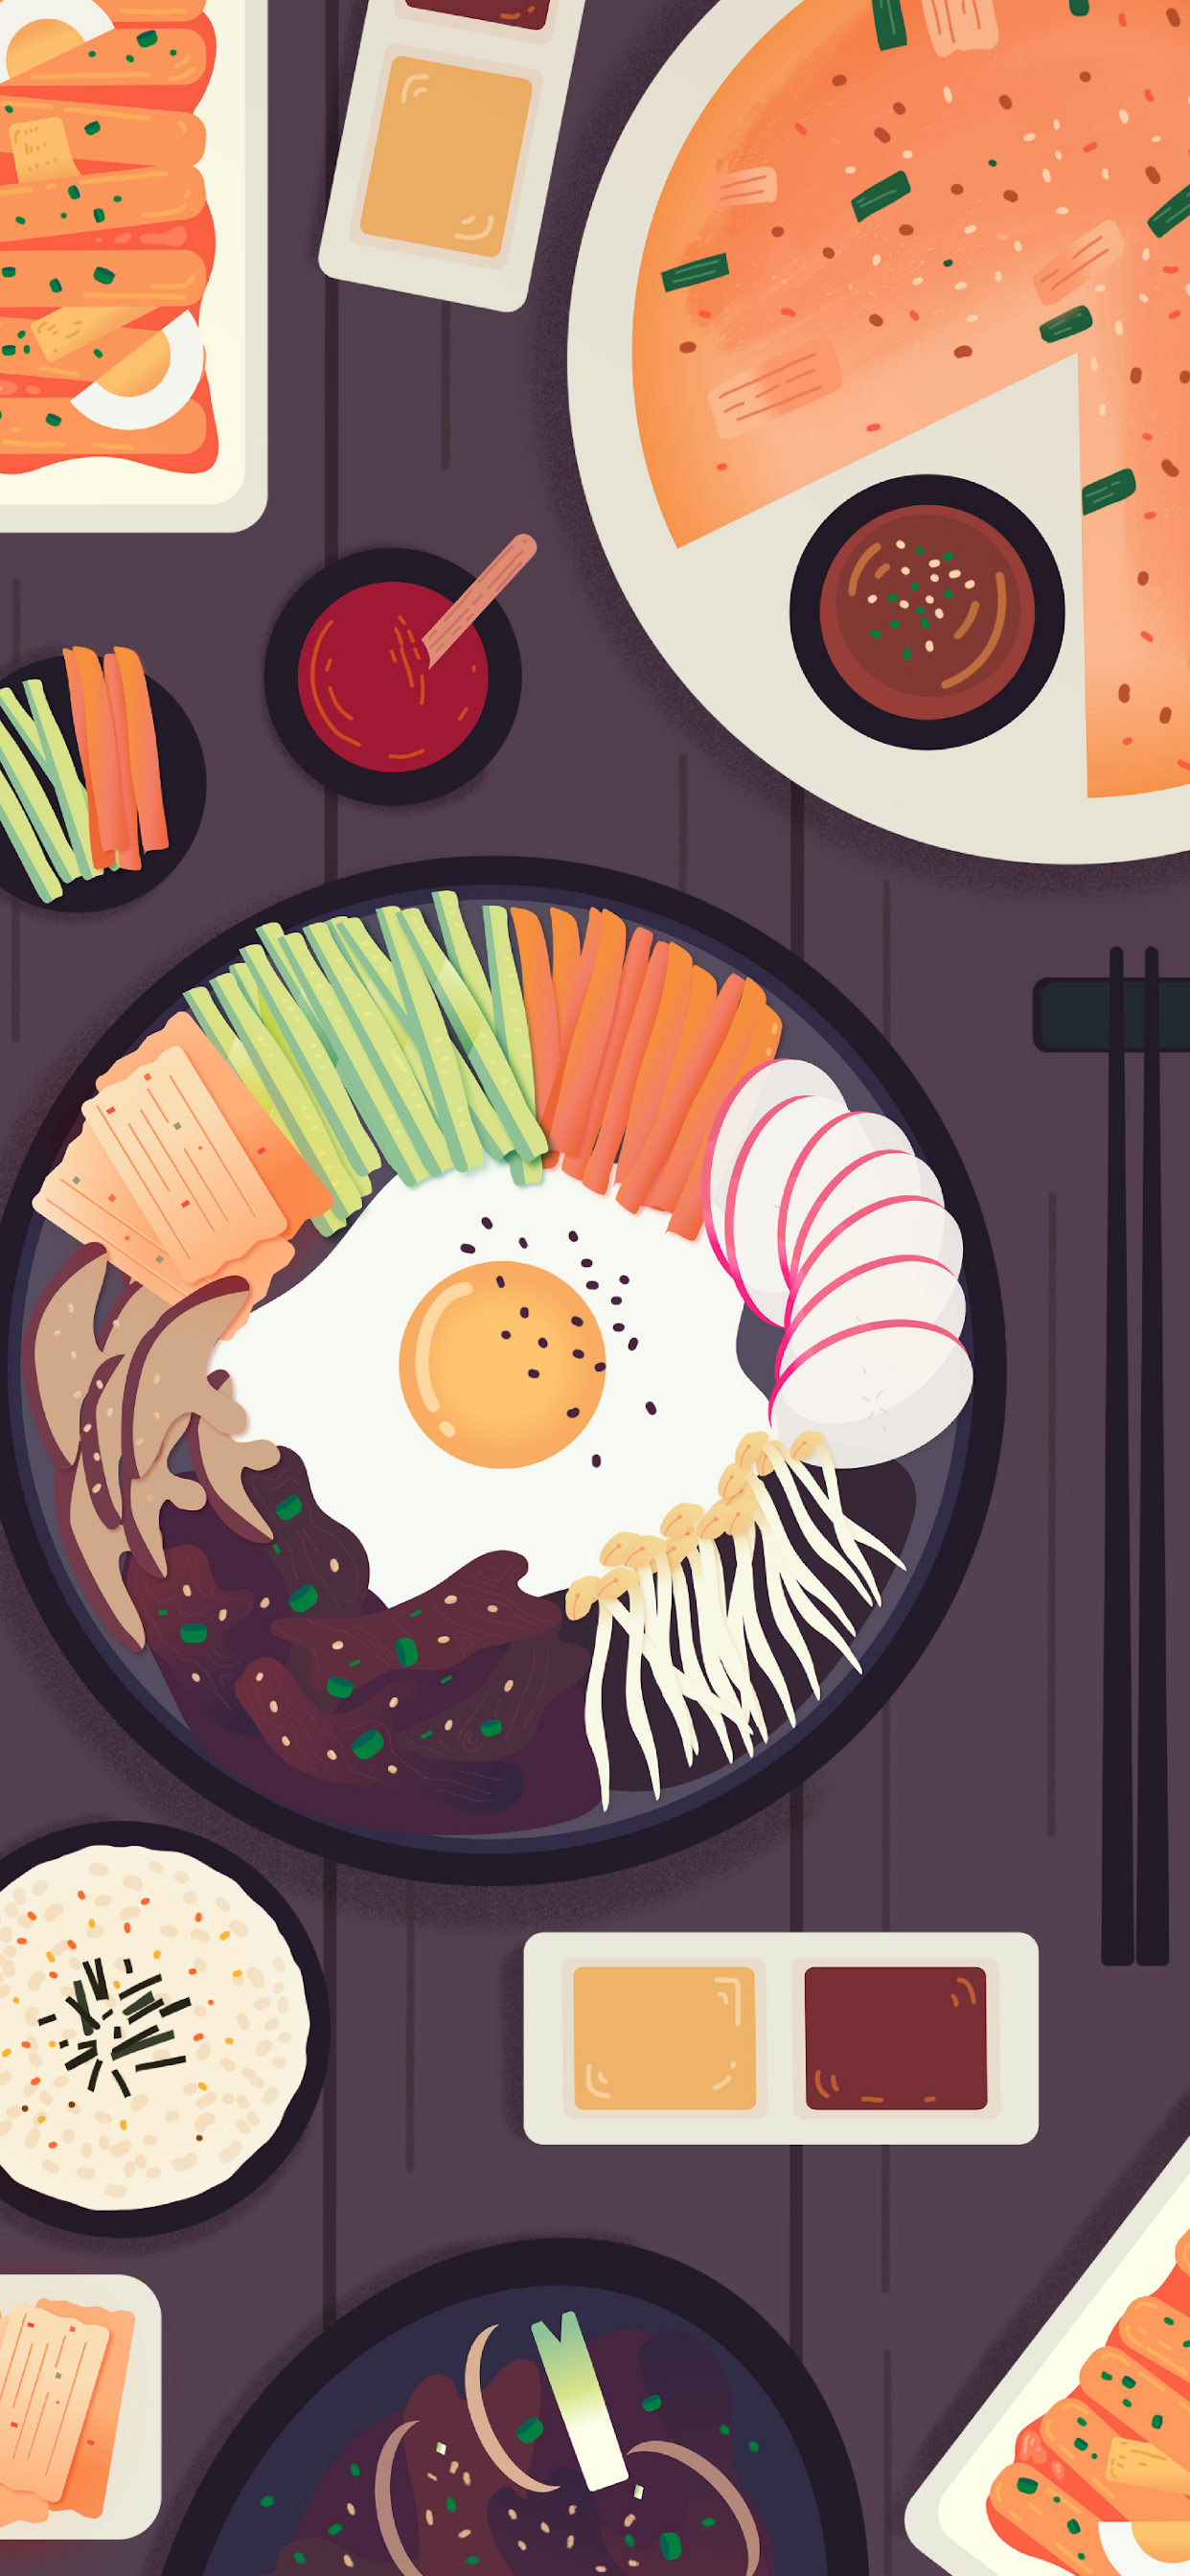 iPhone wallpapers illustration korean food Illustration